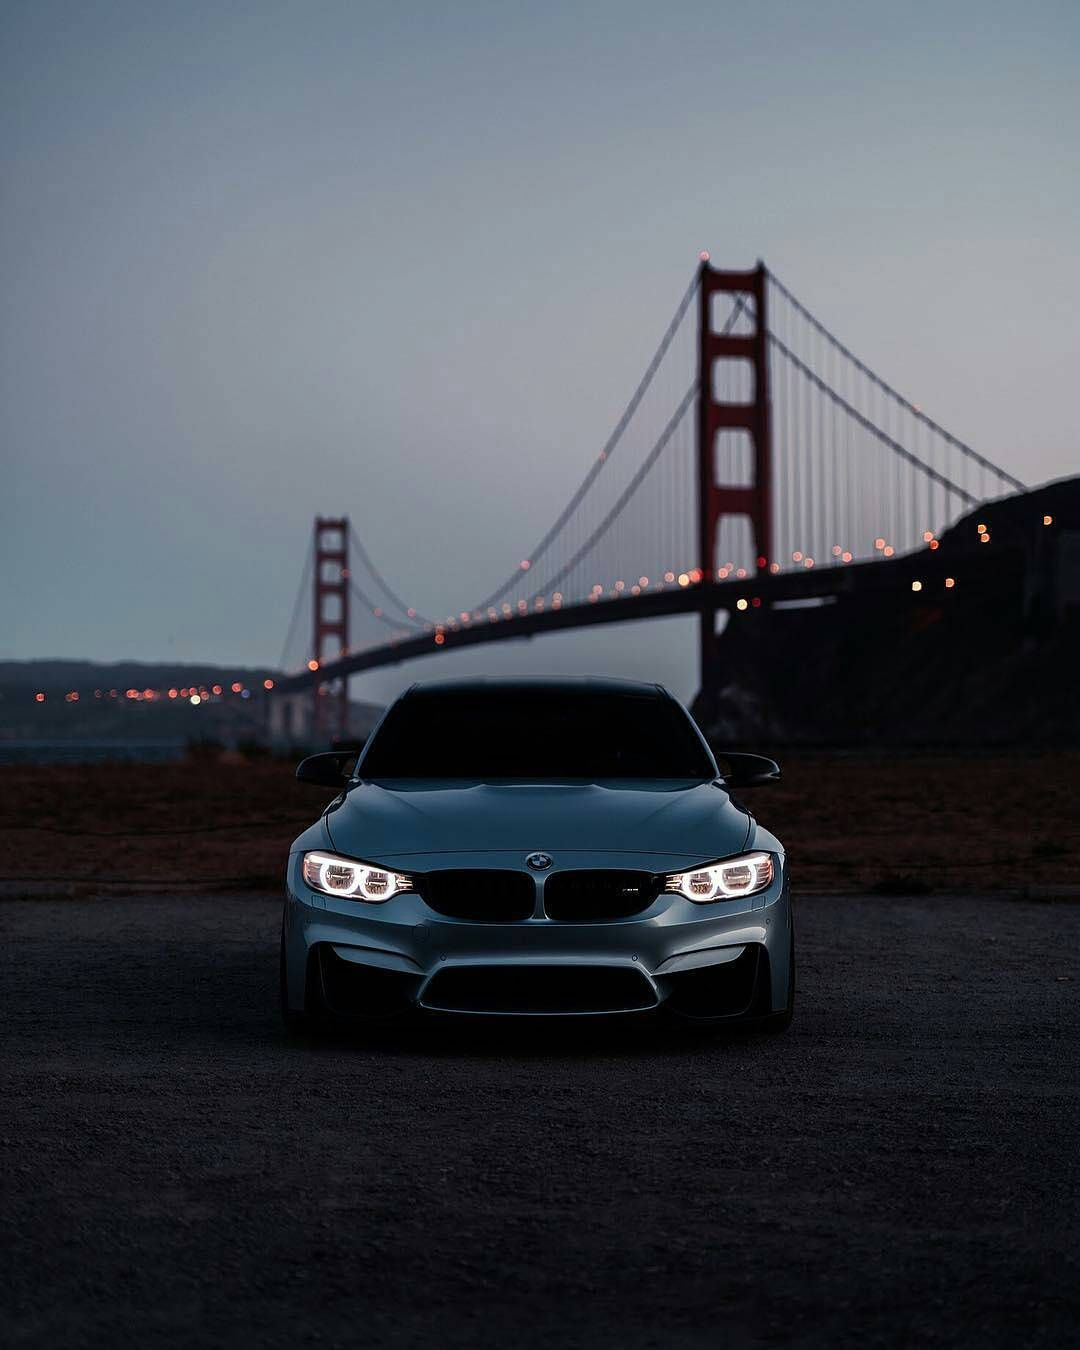 240k Likes 424 Comments Bmw Bmw On Instagram Get Ready For An Untamed Night Out On The Town The Bmw M3 Sedan B Bmw Wallpapers Car Wallpapers Bmw